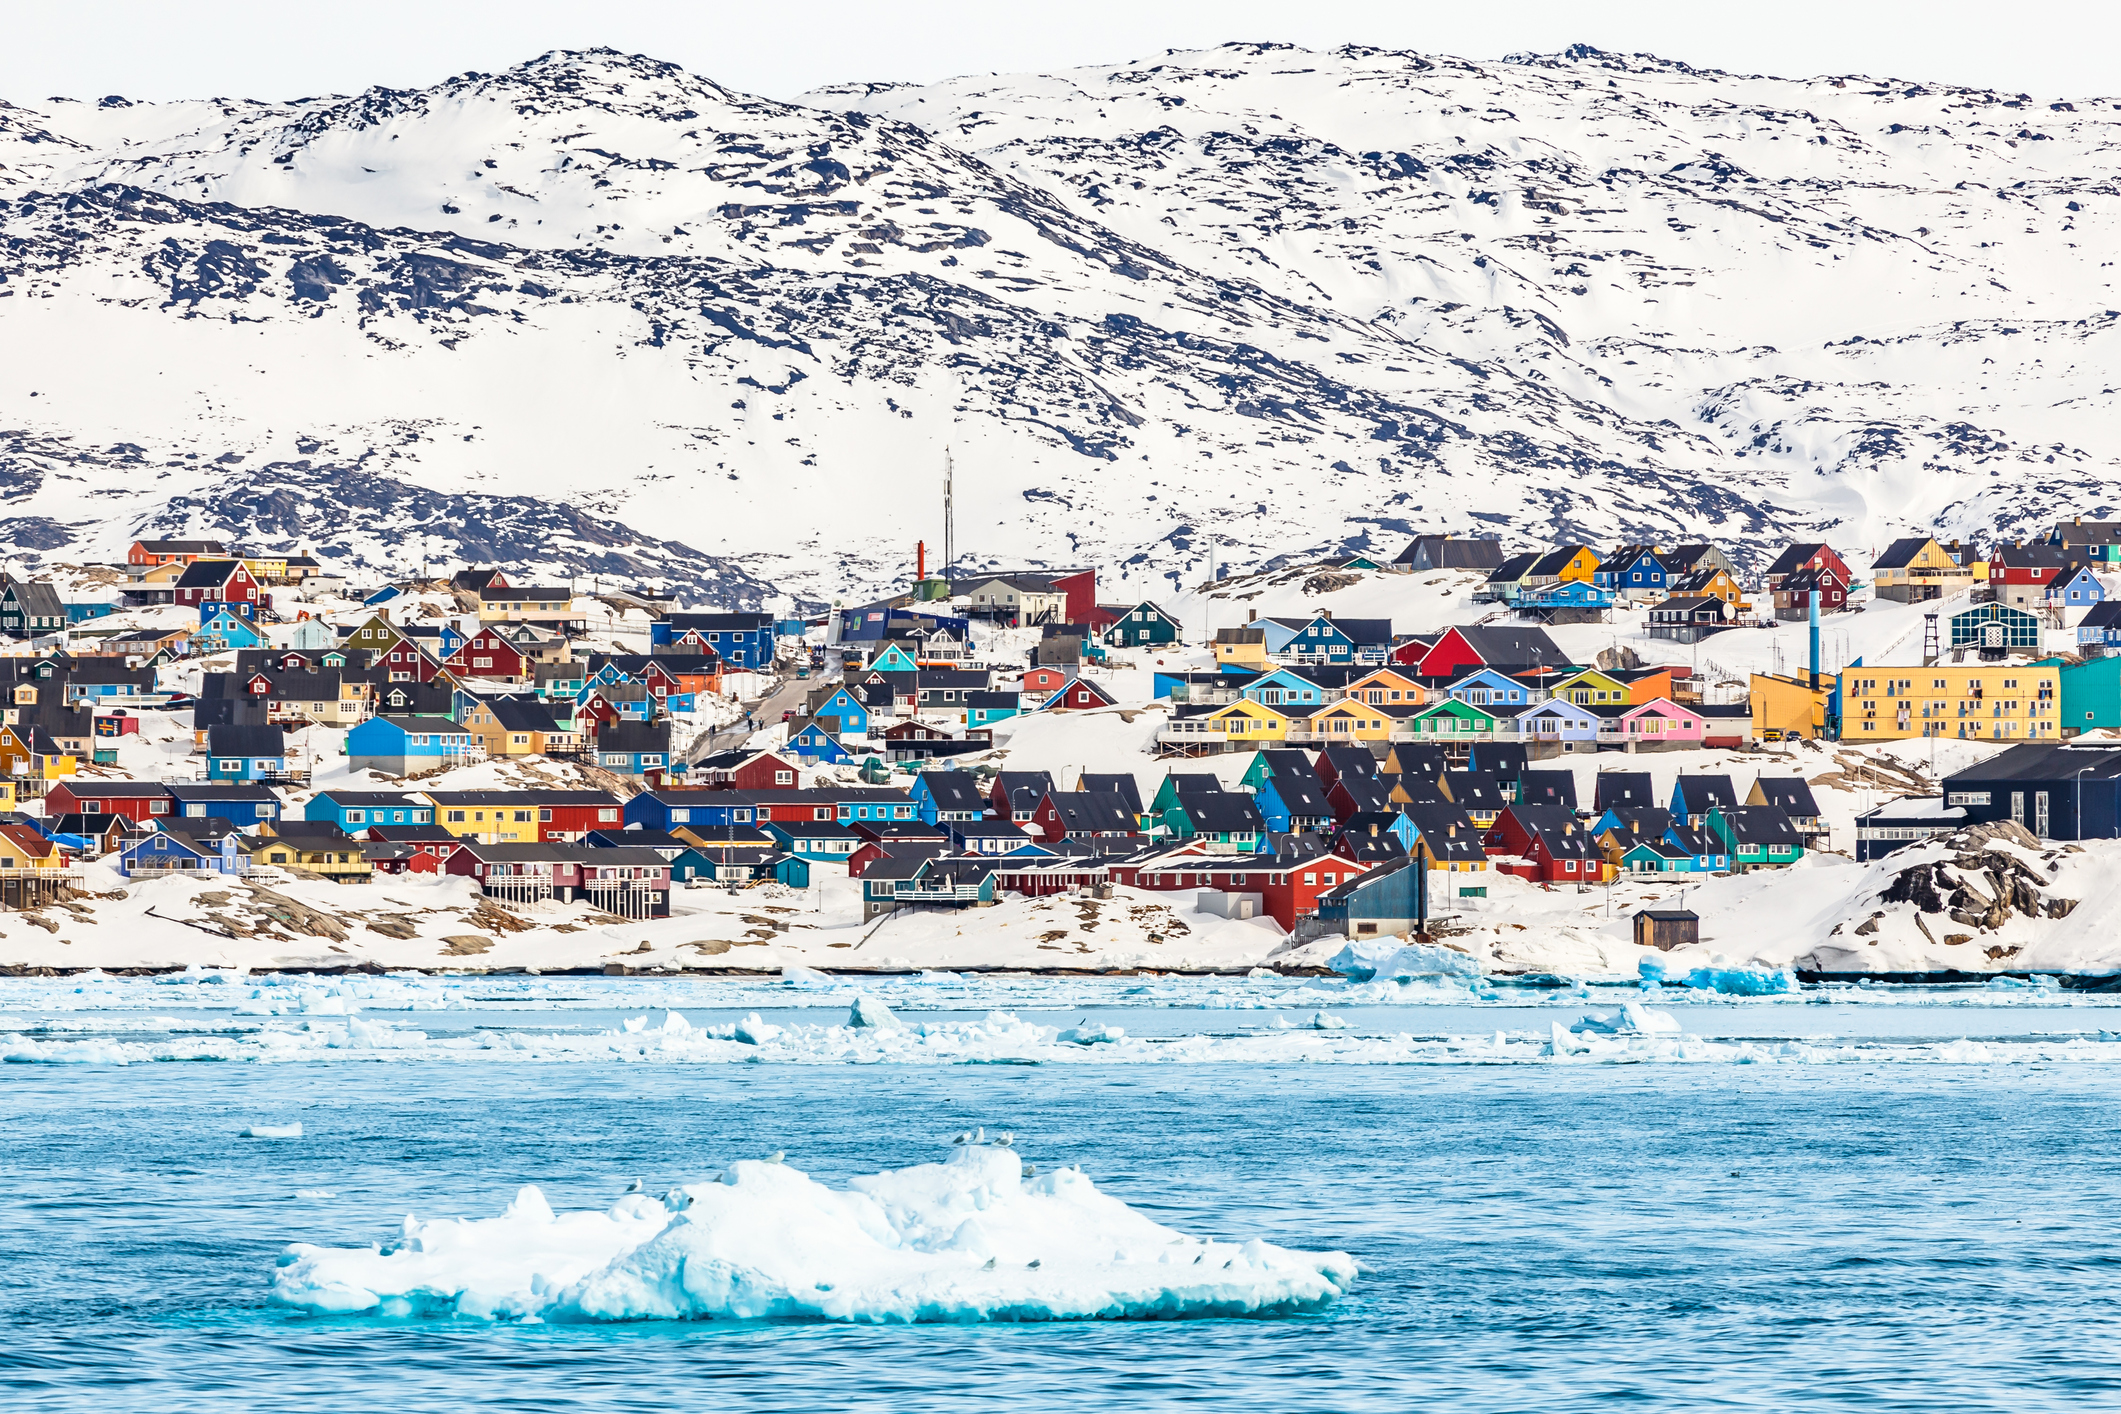 Arctic snow city panorama with colorful Inuit houses on the rocky hills covered in snow with icebergs in the foreground, Ilulissat, Greenland